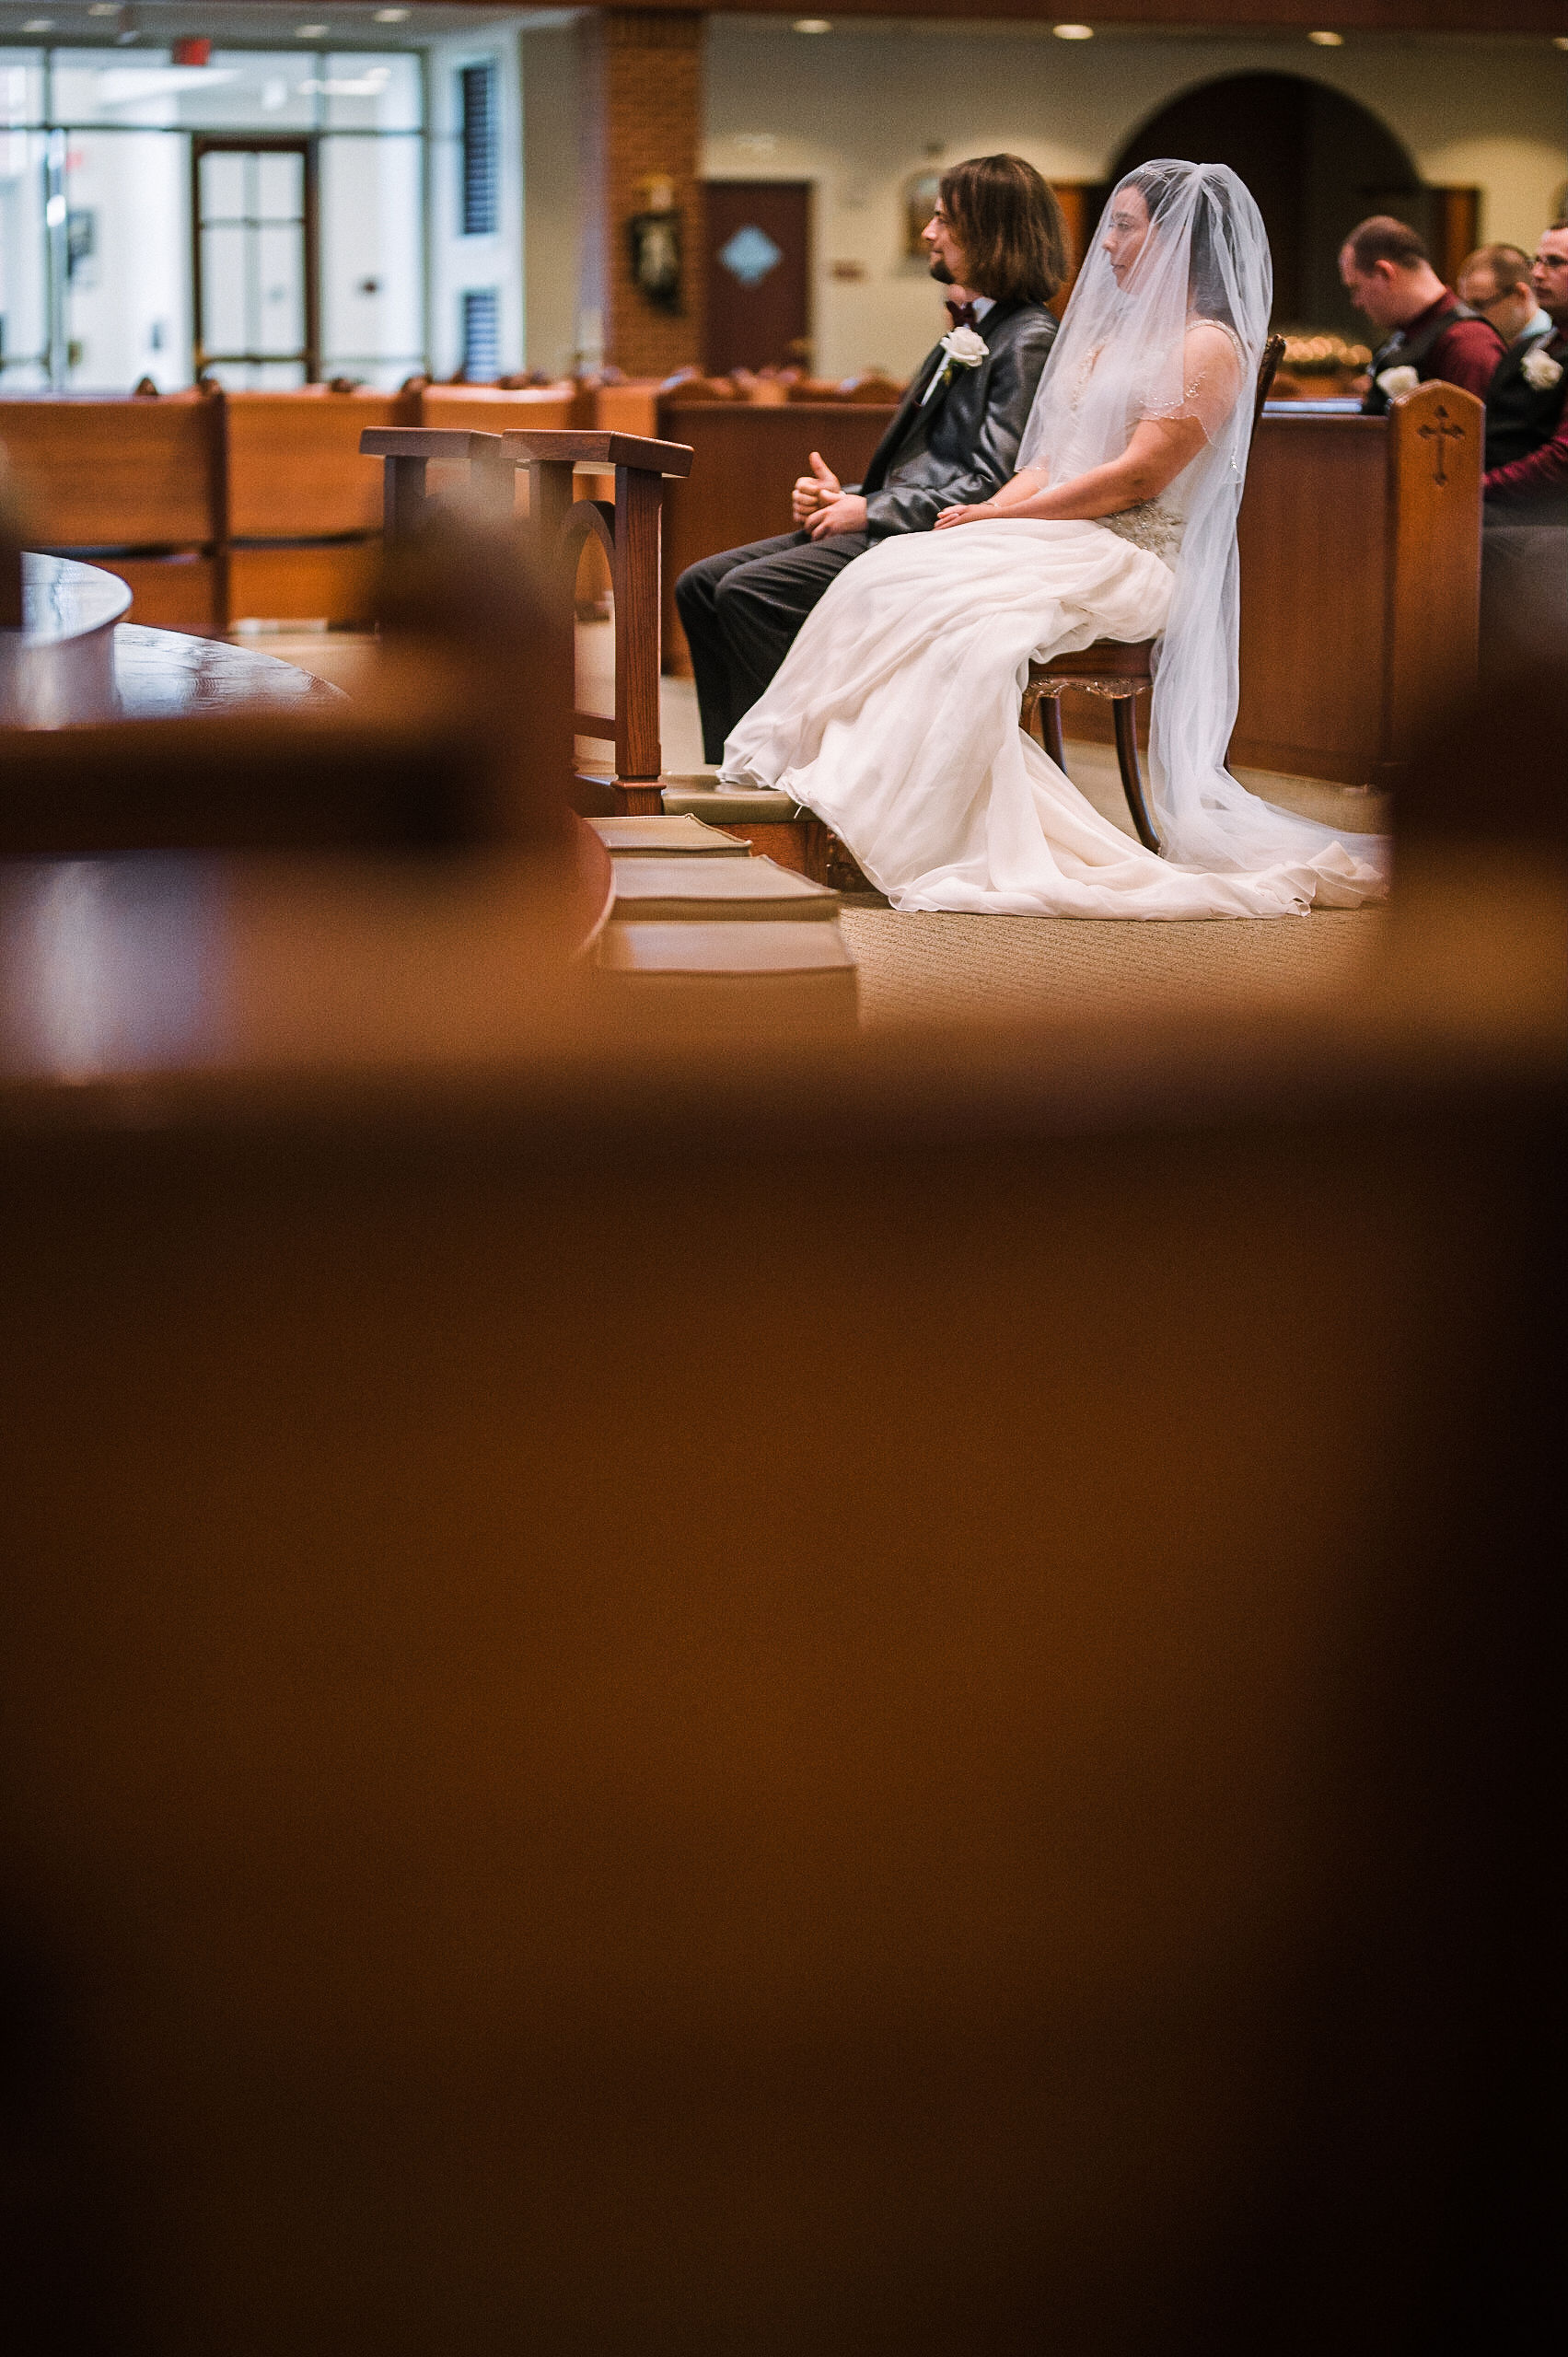 bride and groom during ceremony at all saints catholic church